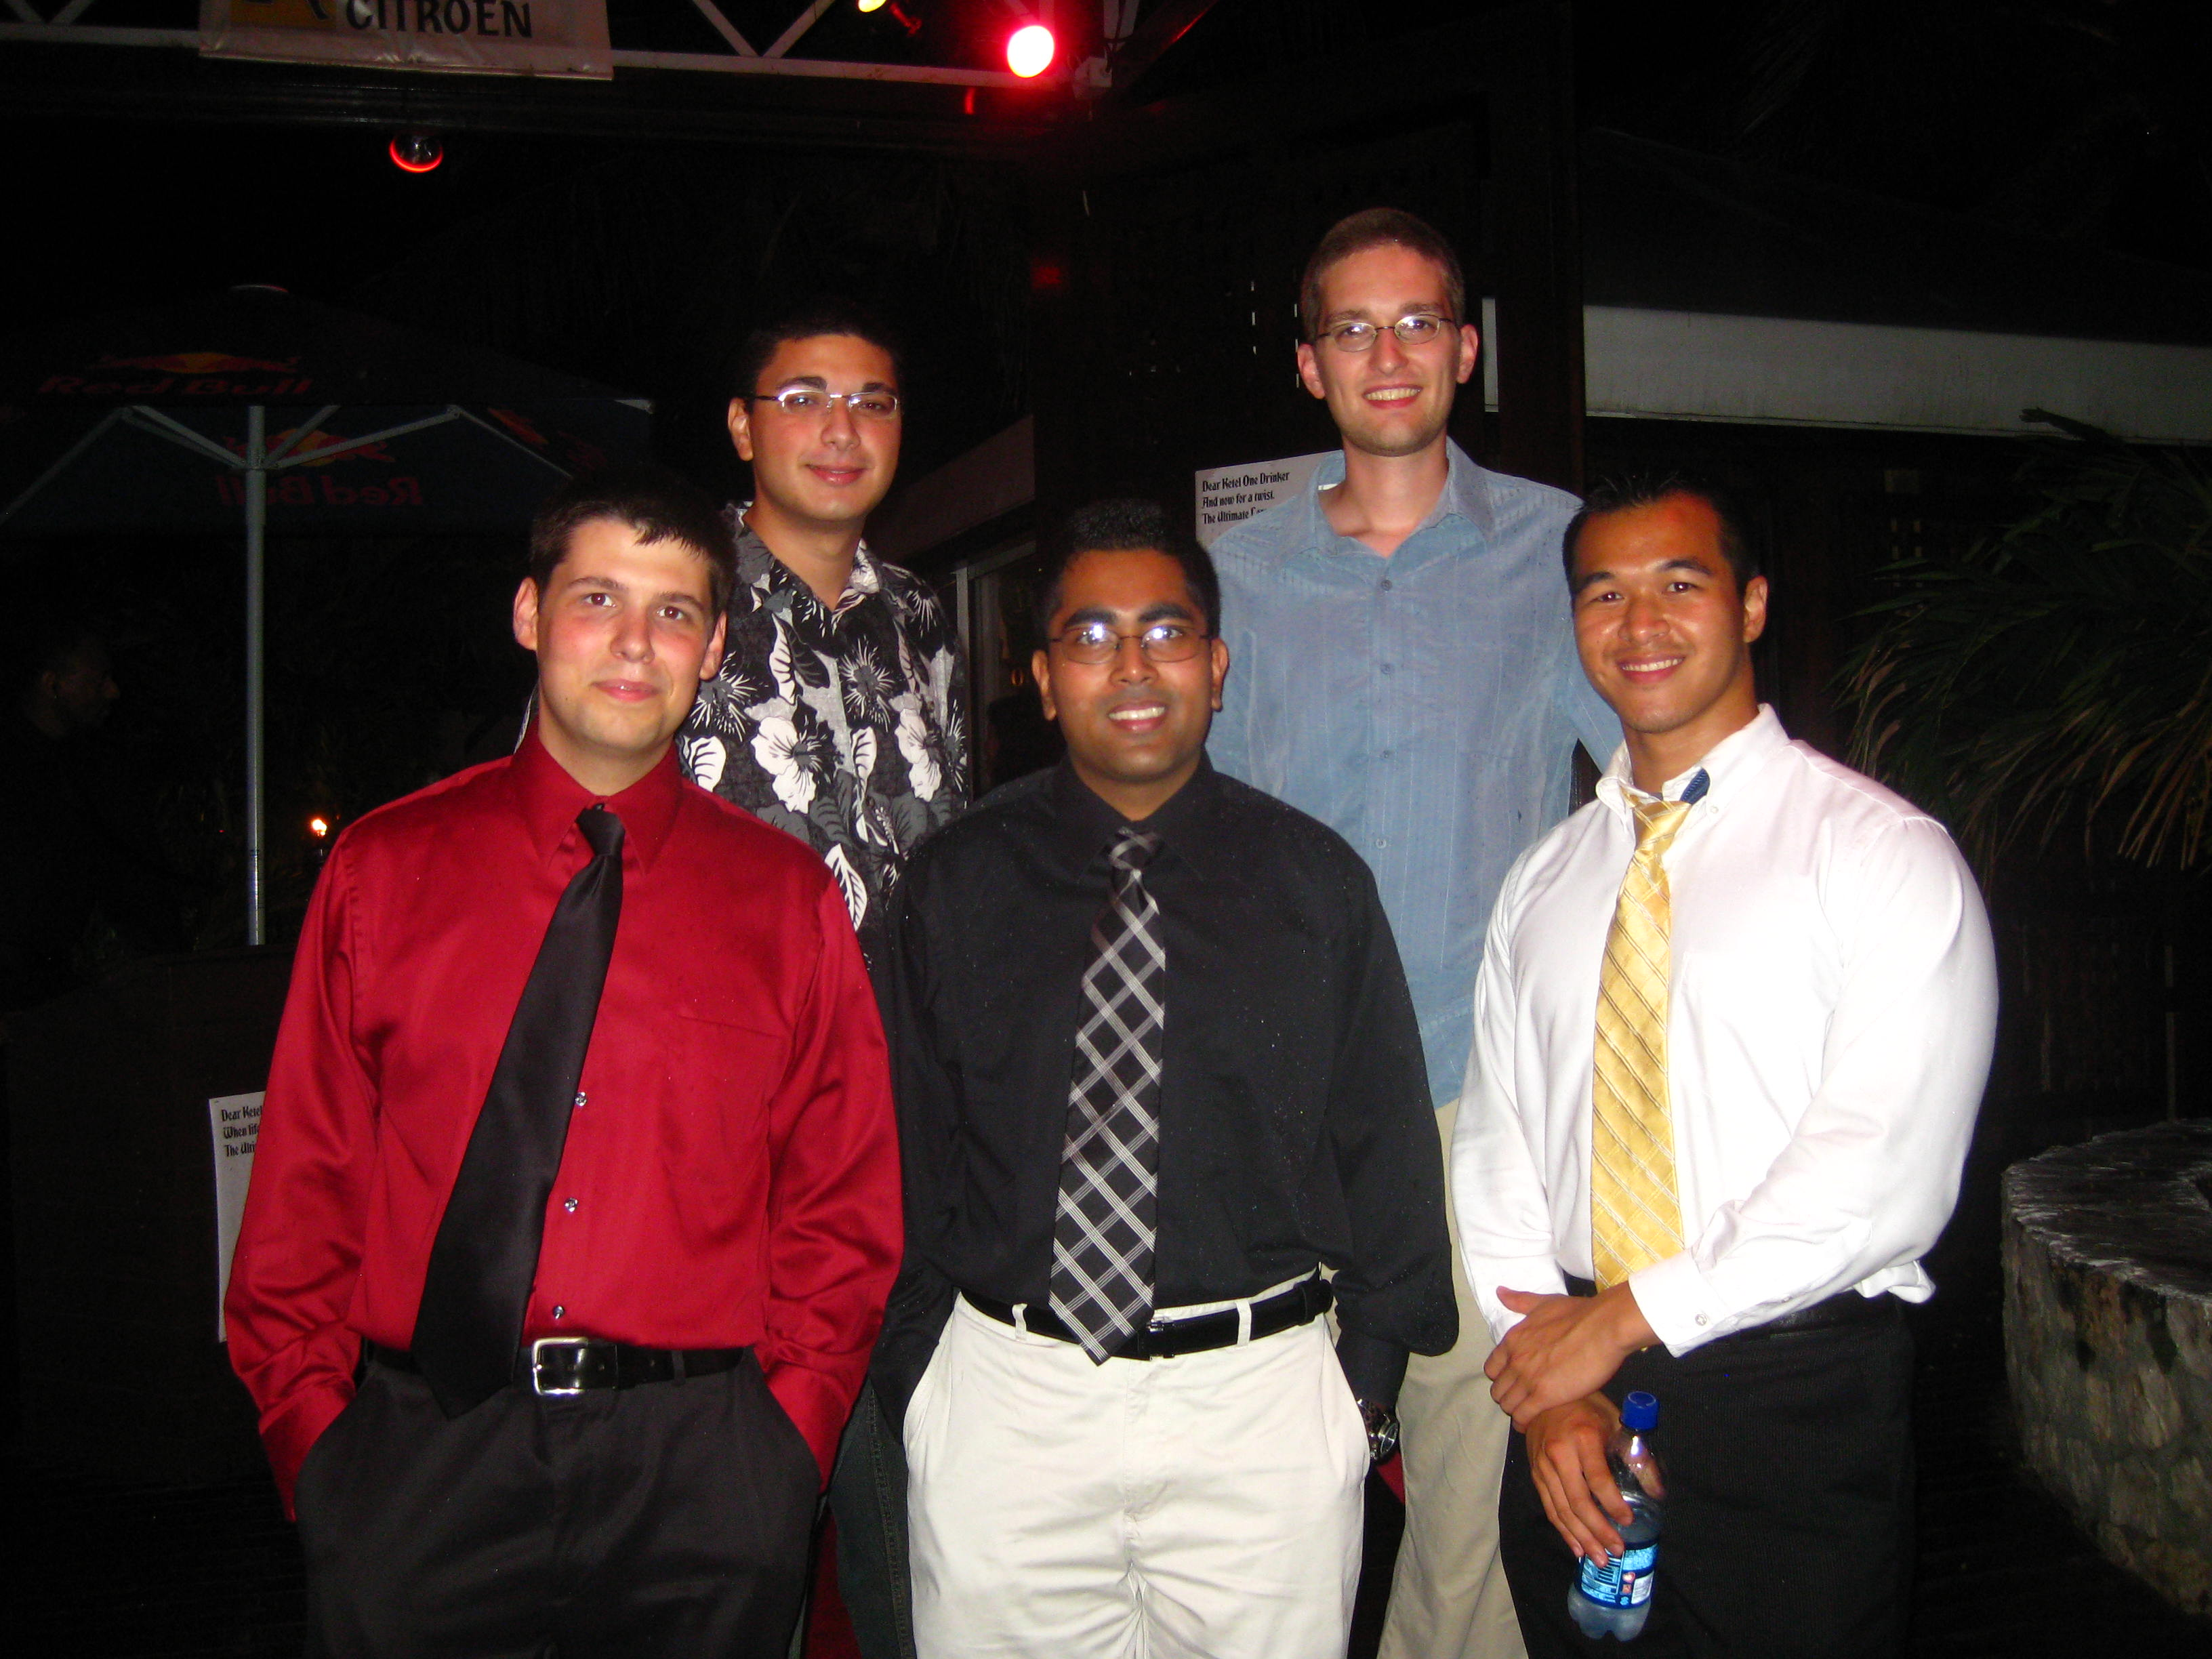 Mina, Chris, Josh, Arif and I at the White Coat Reception at Bliss.